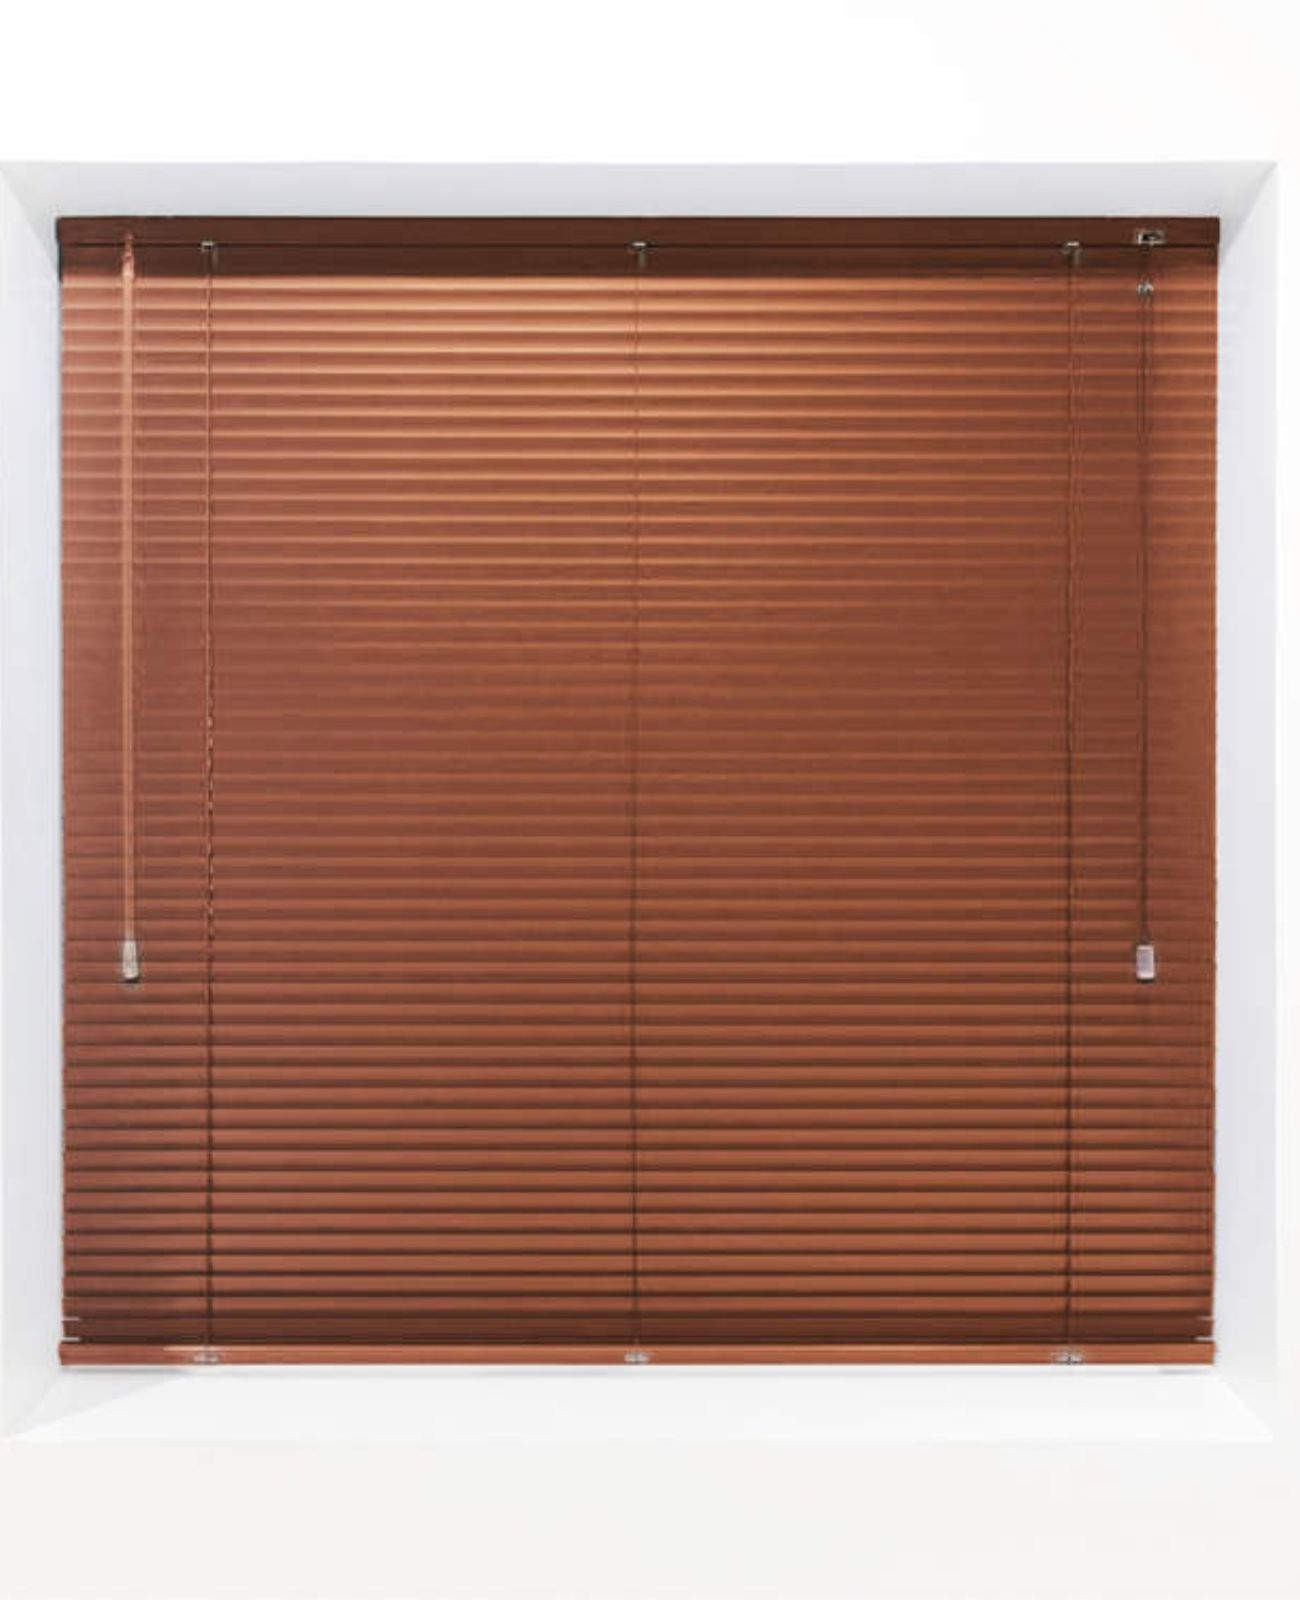 Saddle Brown 25mm Metal Venetian Blind - Made to Measure